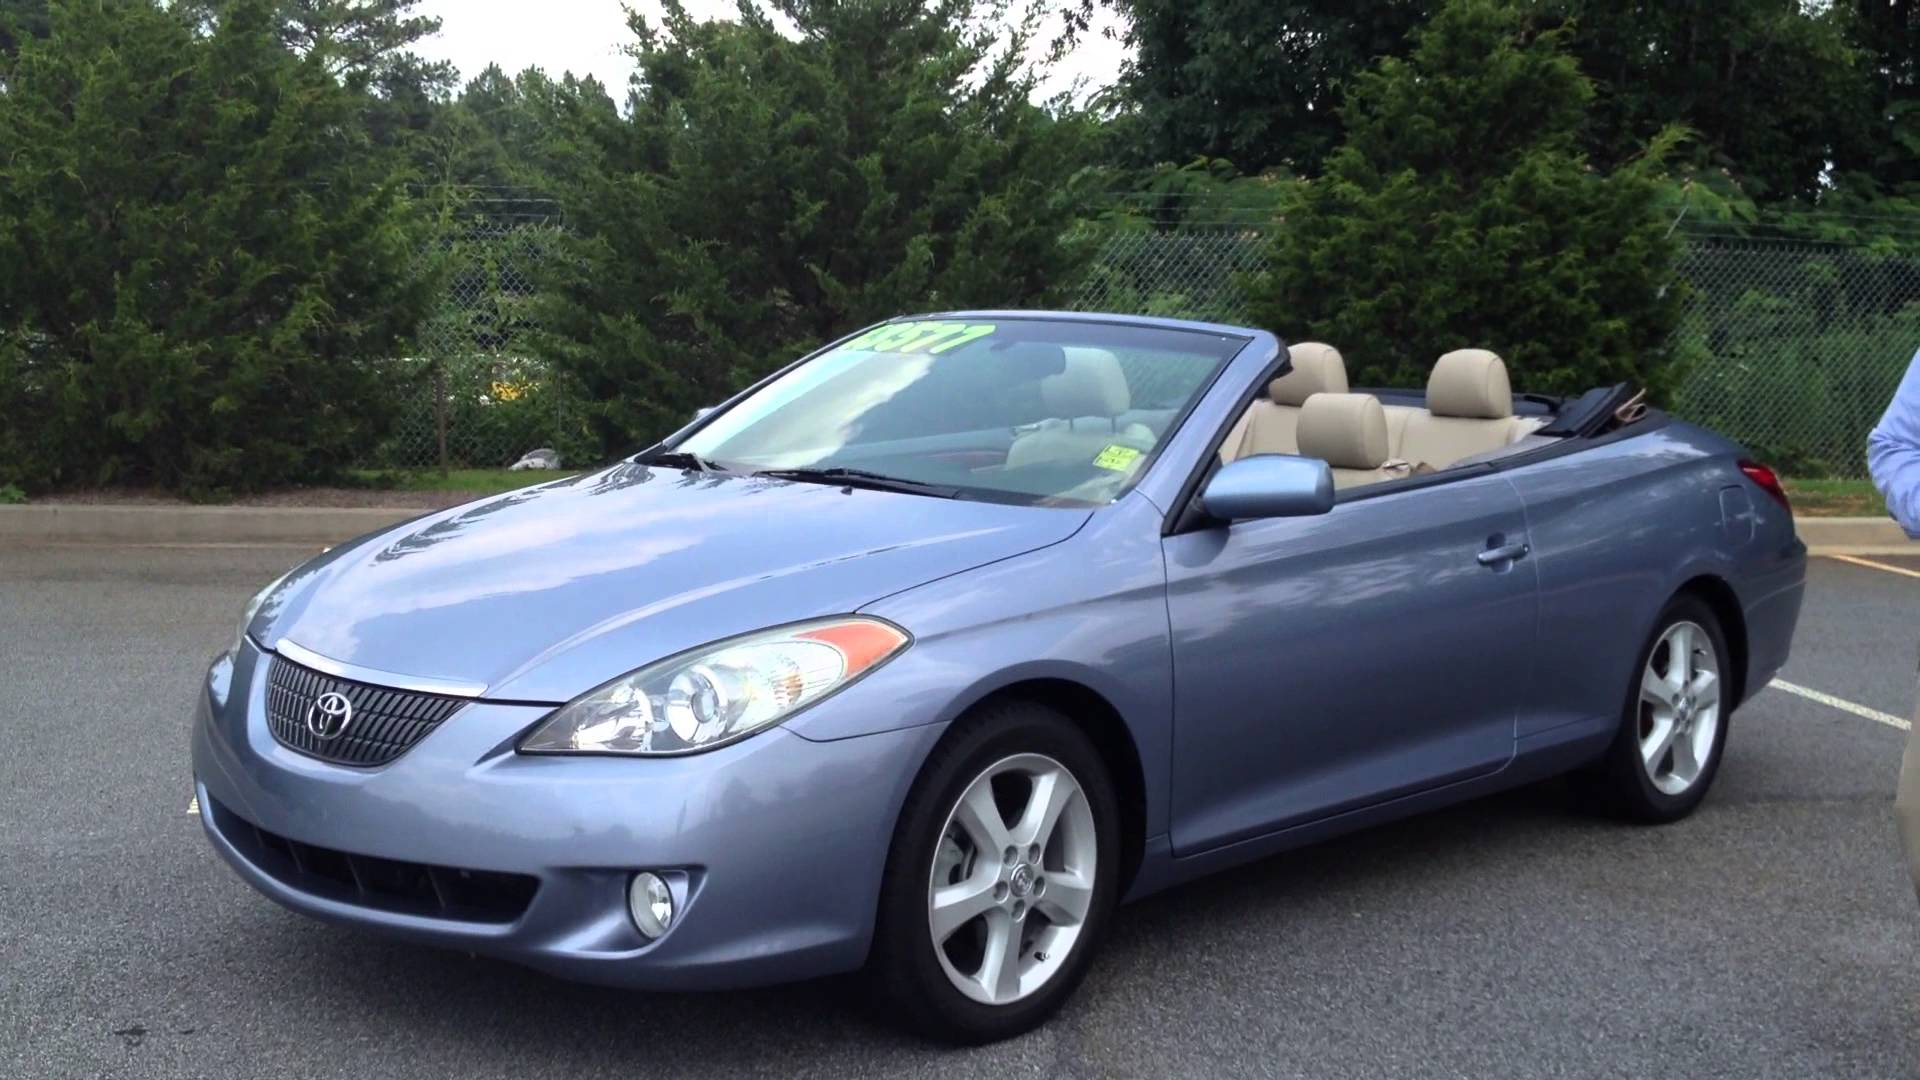 View Larger Image Toyota Solara Convertible